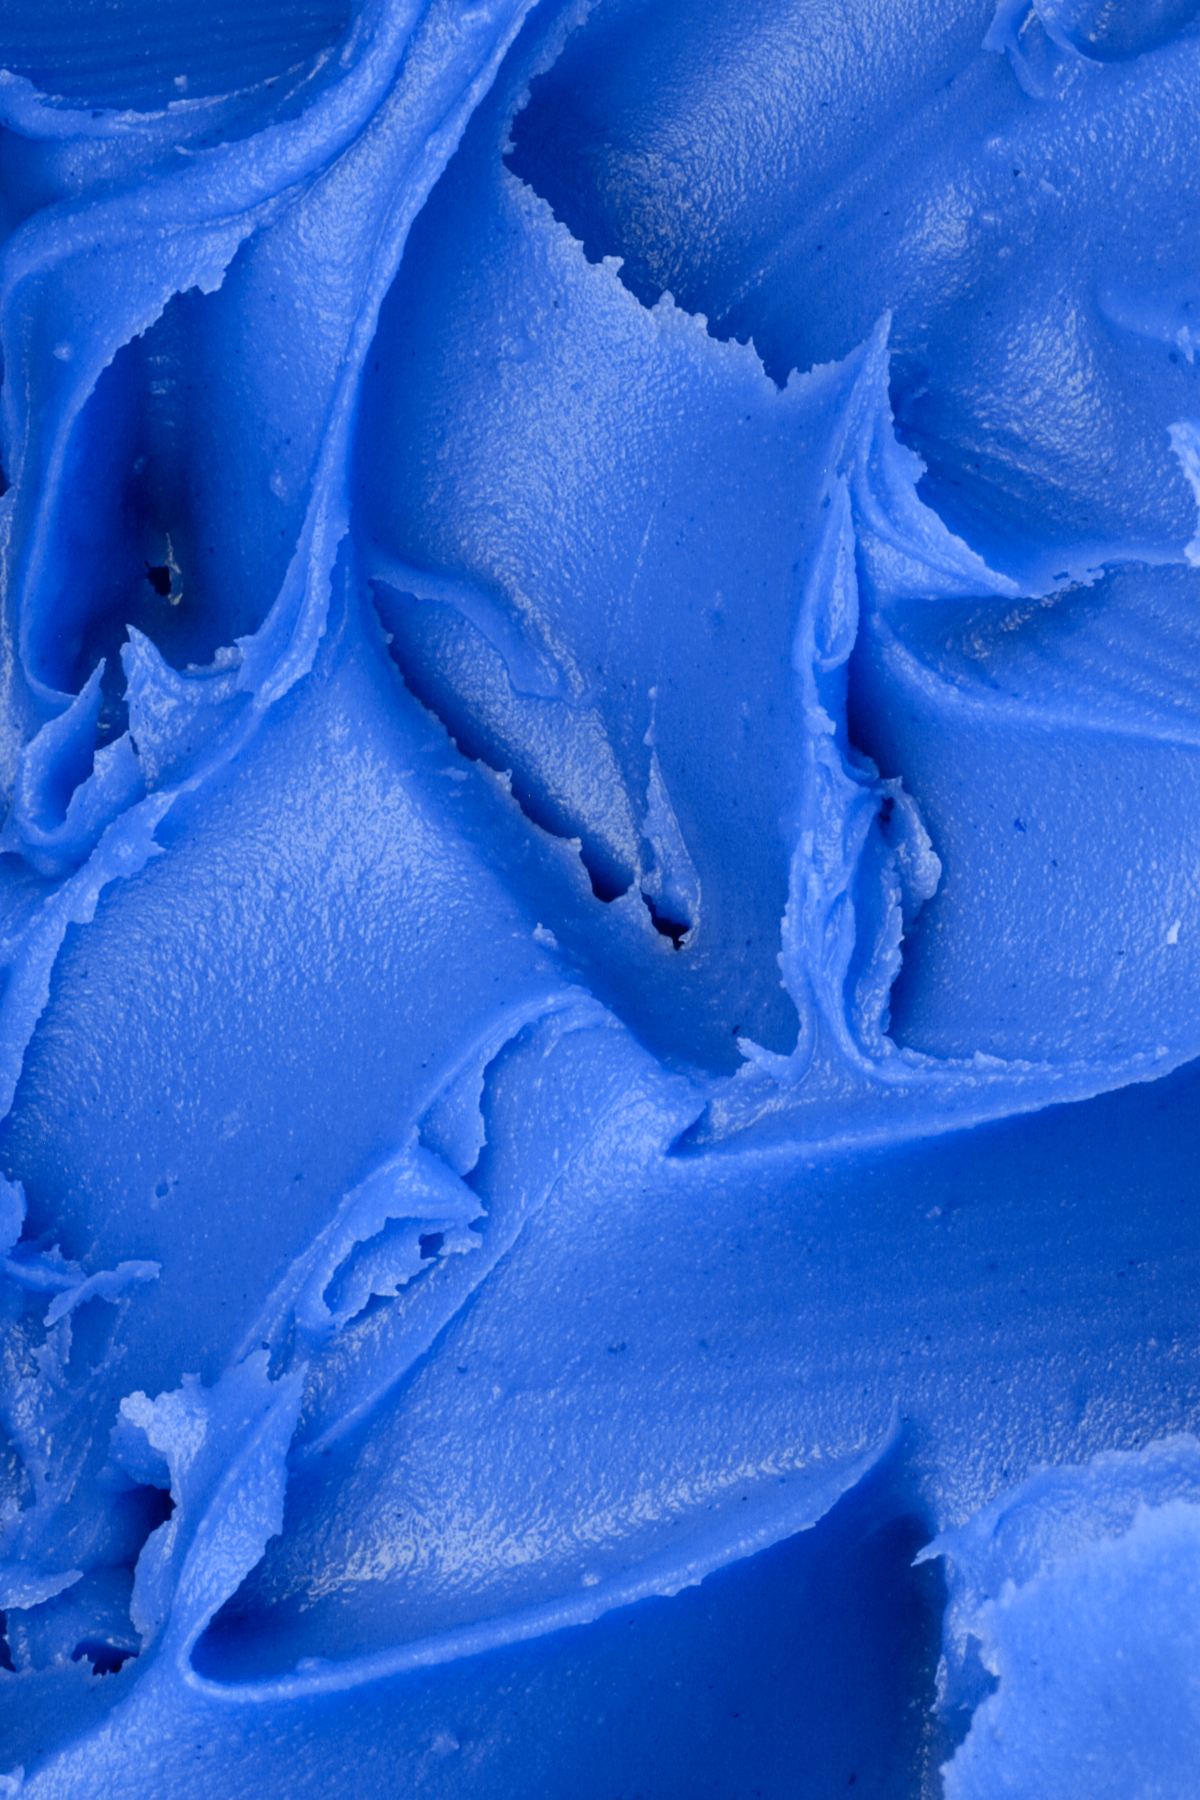 Blue icing texture photo